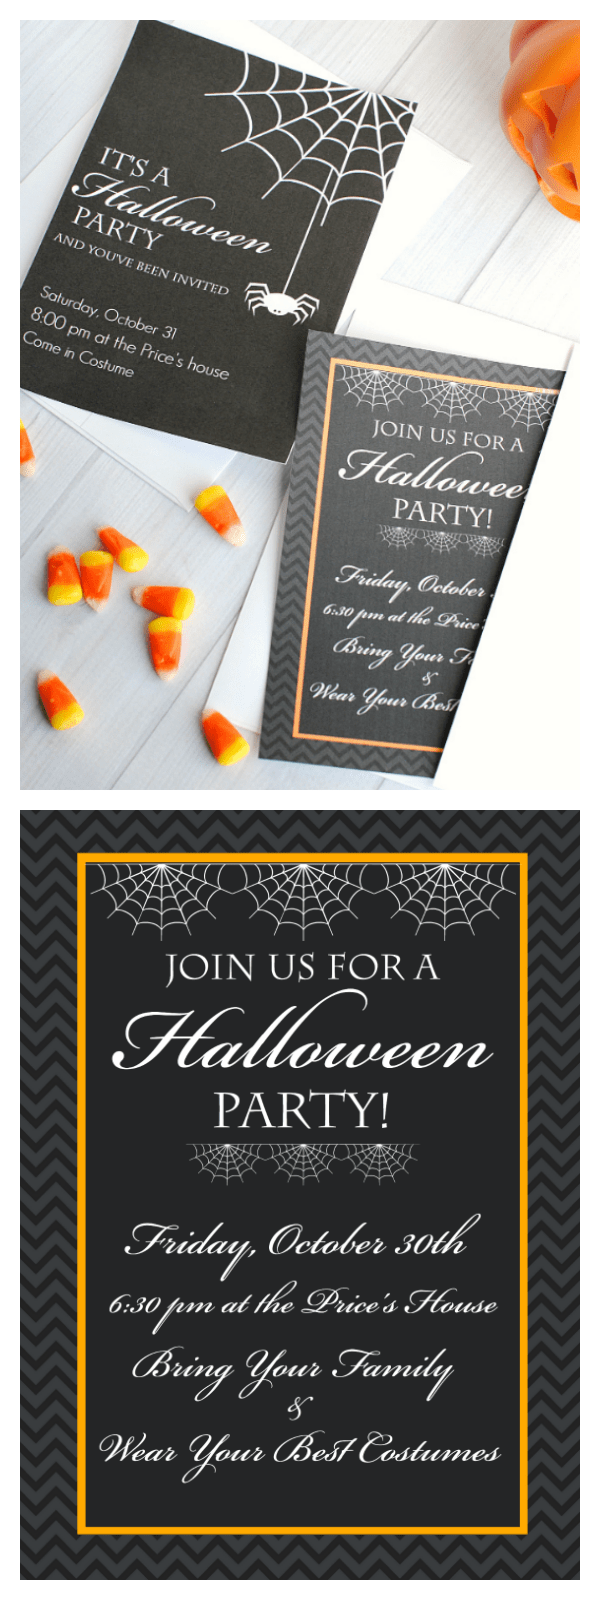 image relating to Free Printable Halloween Invitations called Lovely Free of charge Printable Halloween Invites Pleasurable-Squared